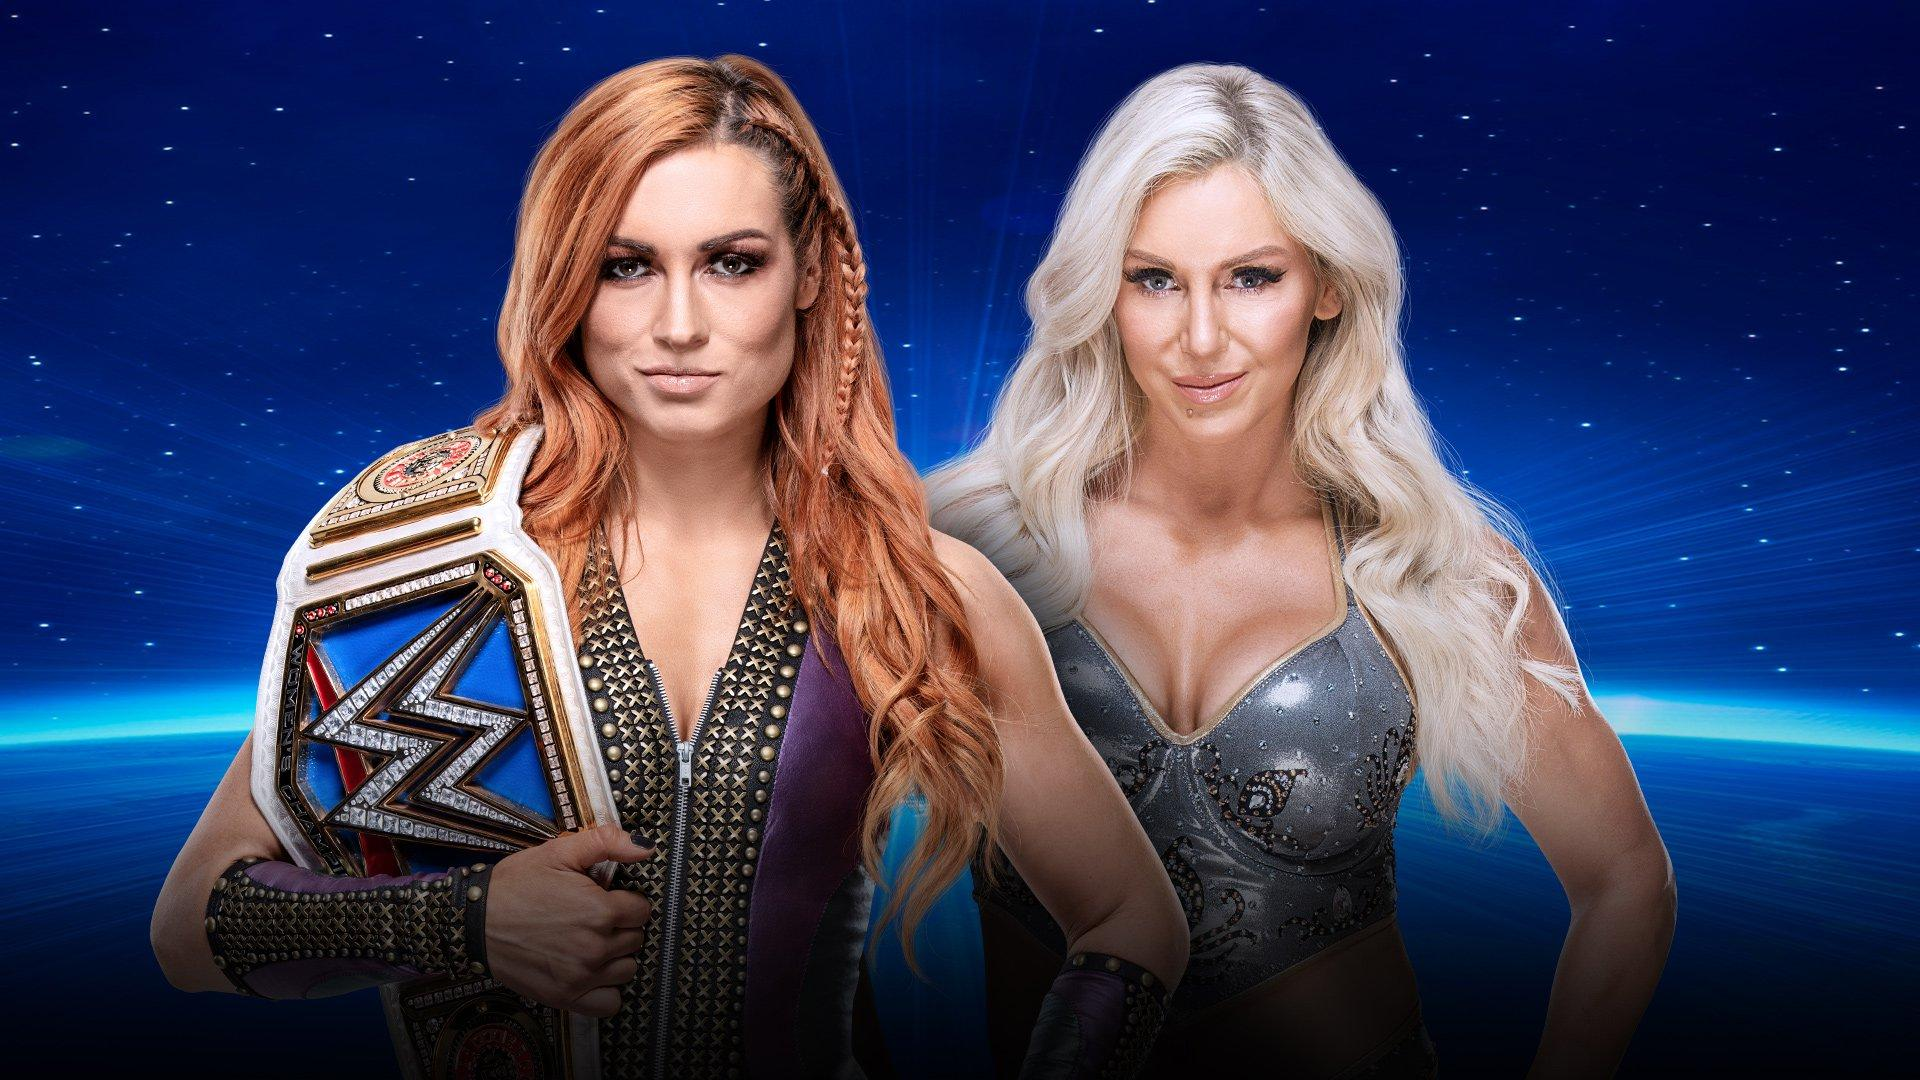 SmackDown Women's Champion Becky Lynch vs Charlotte Flair - Last Woman Standing Match